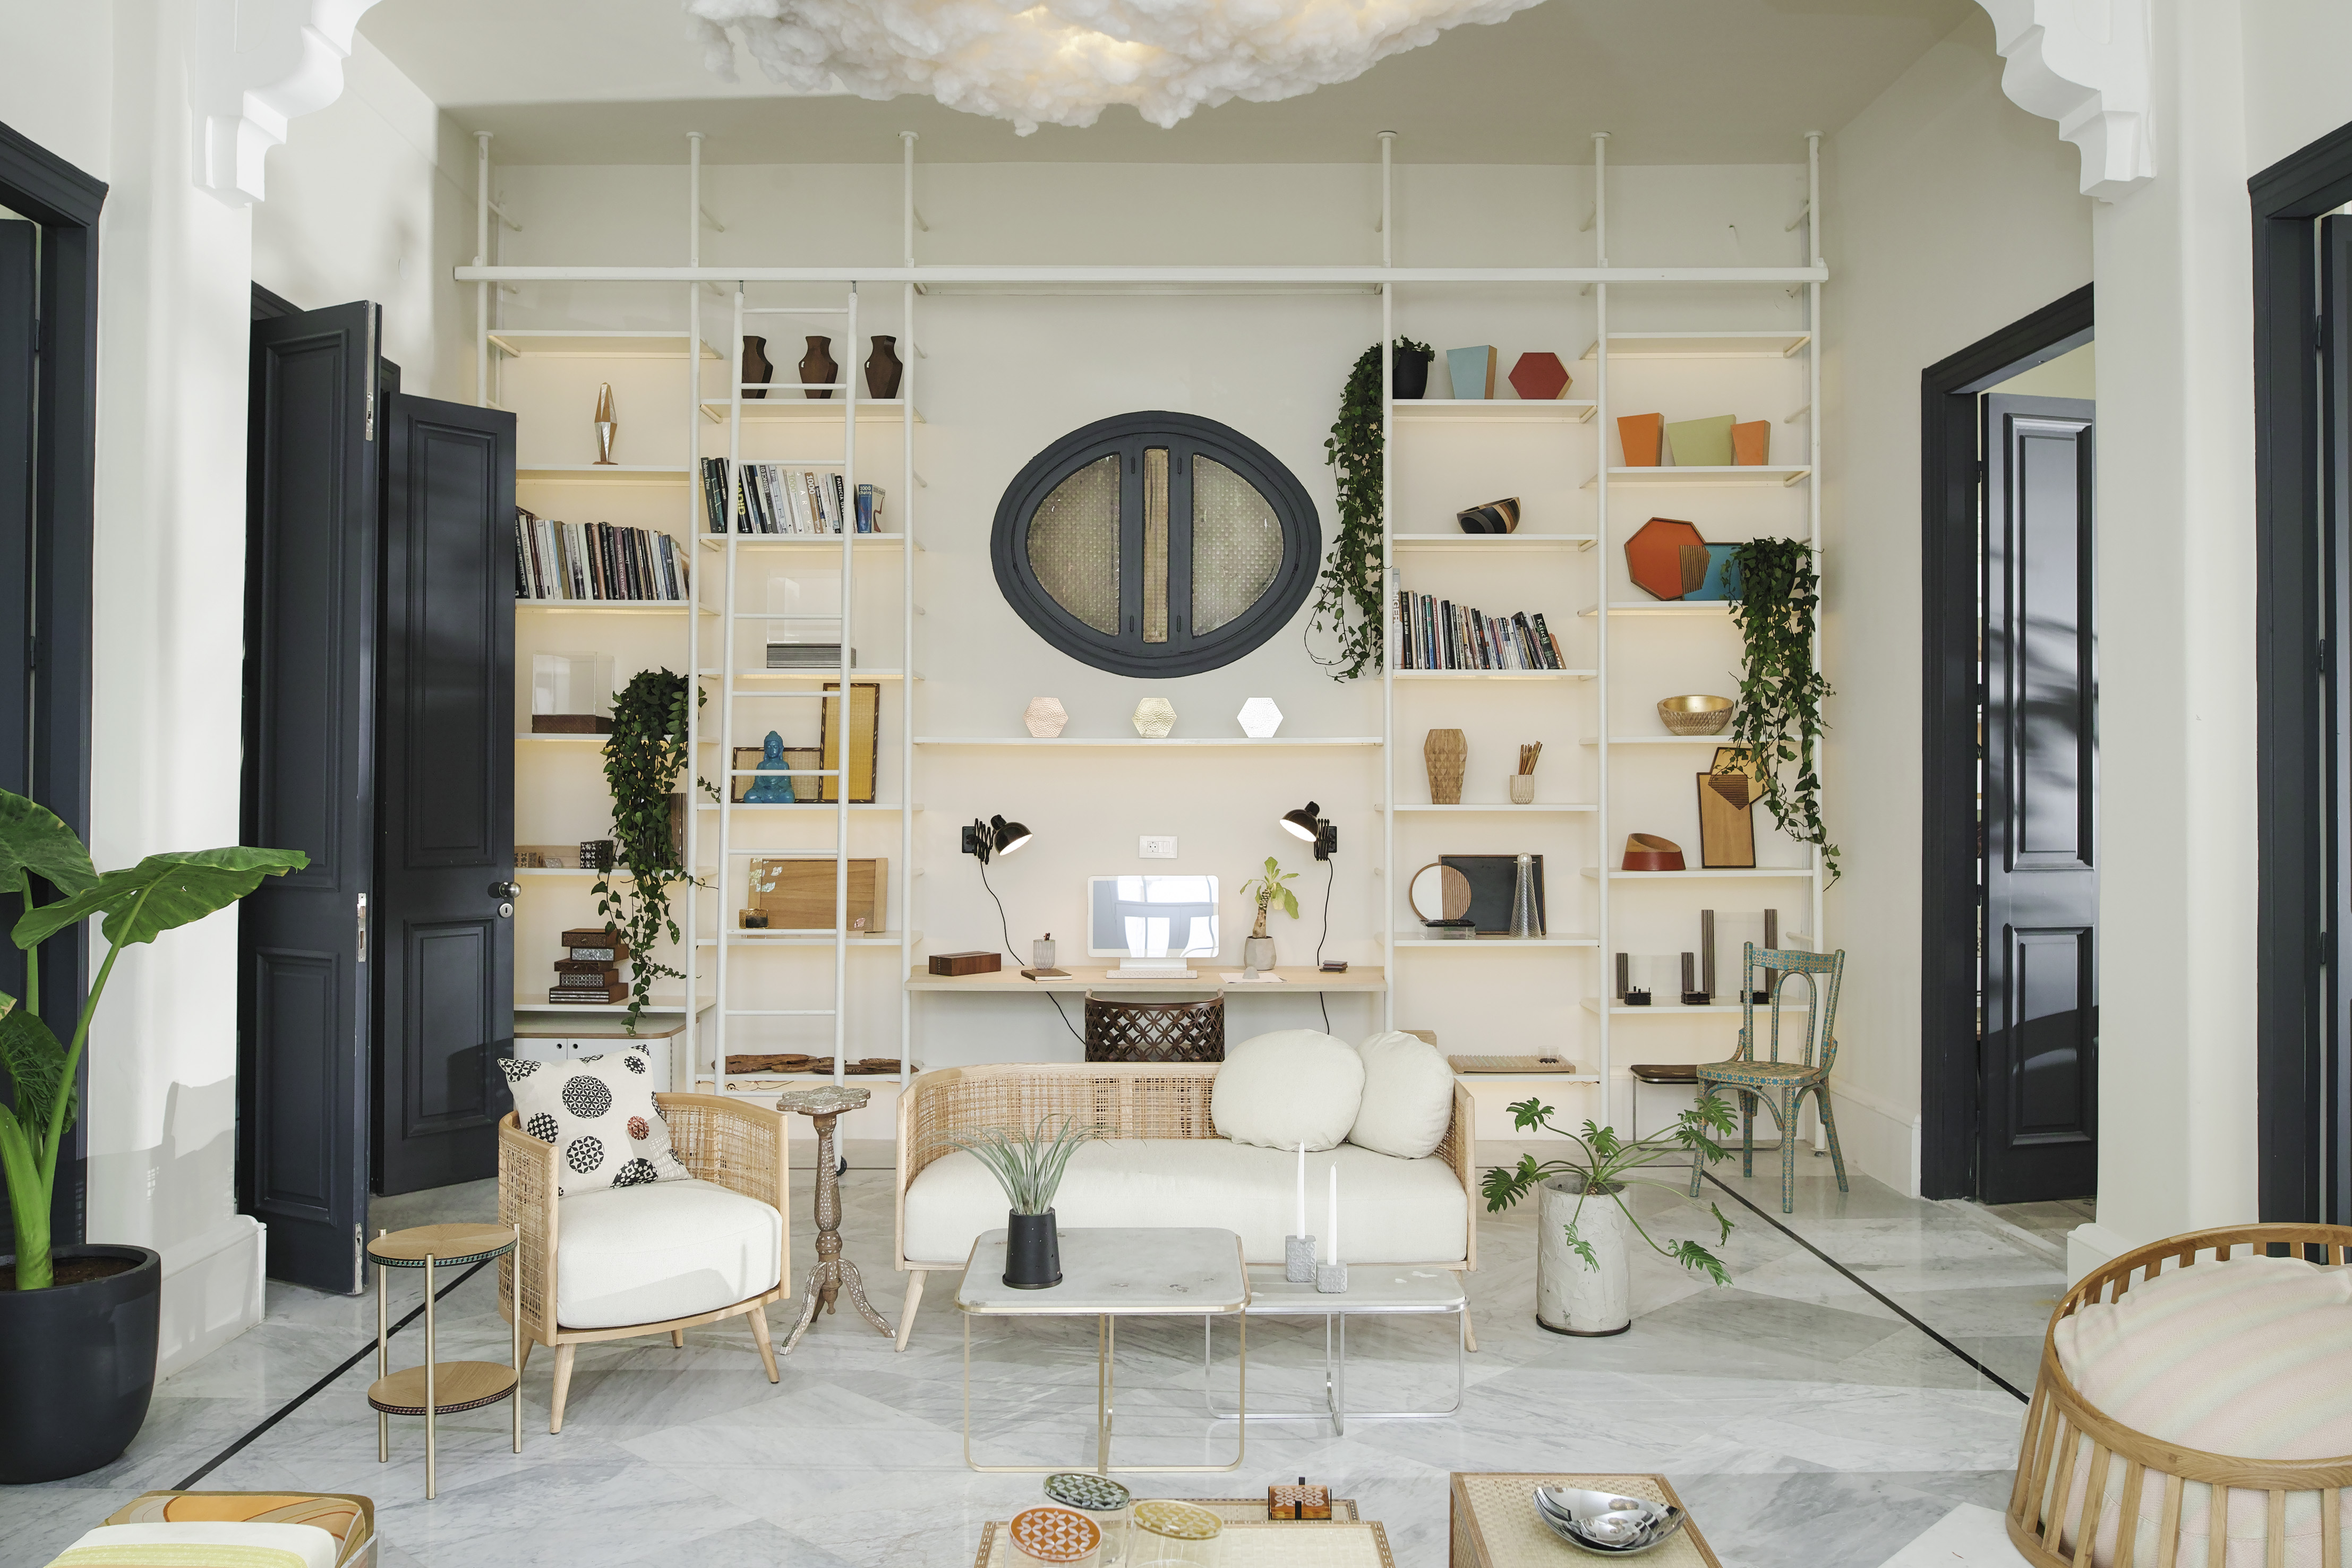 Decorating your home for Ramadan - Design Middle East